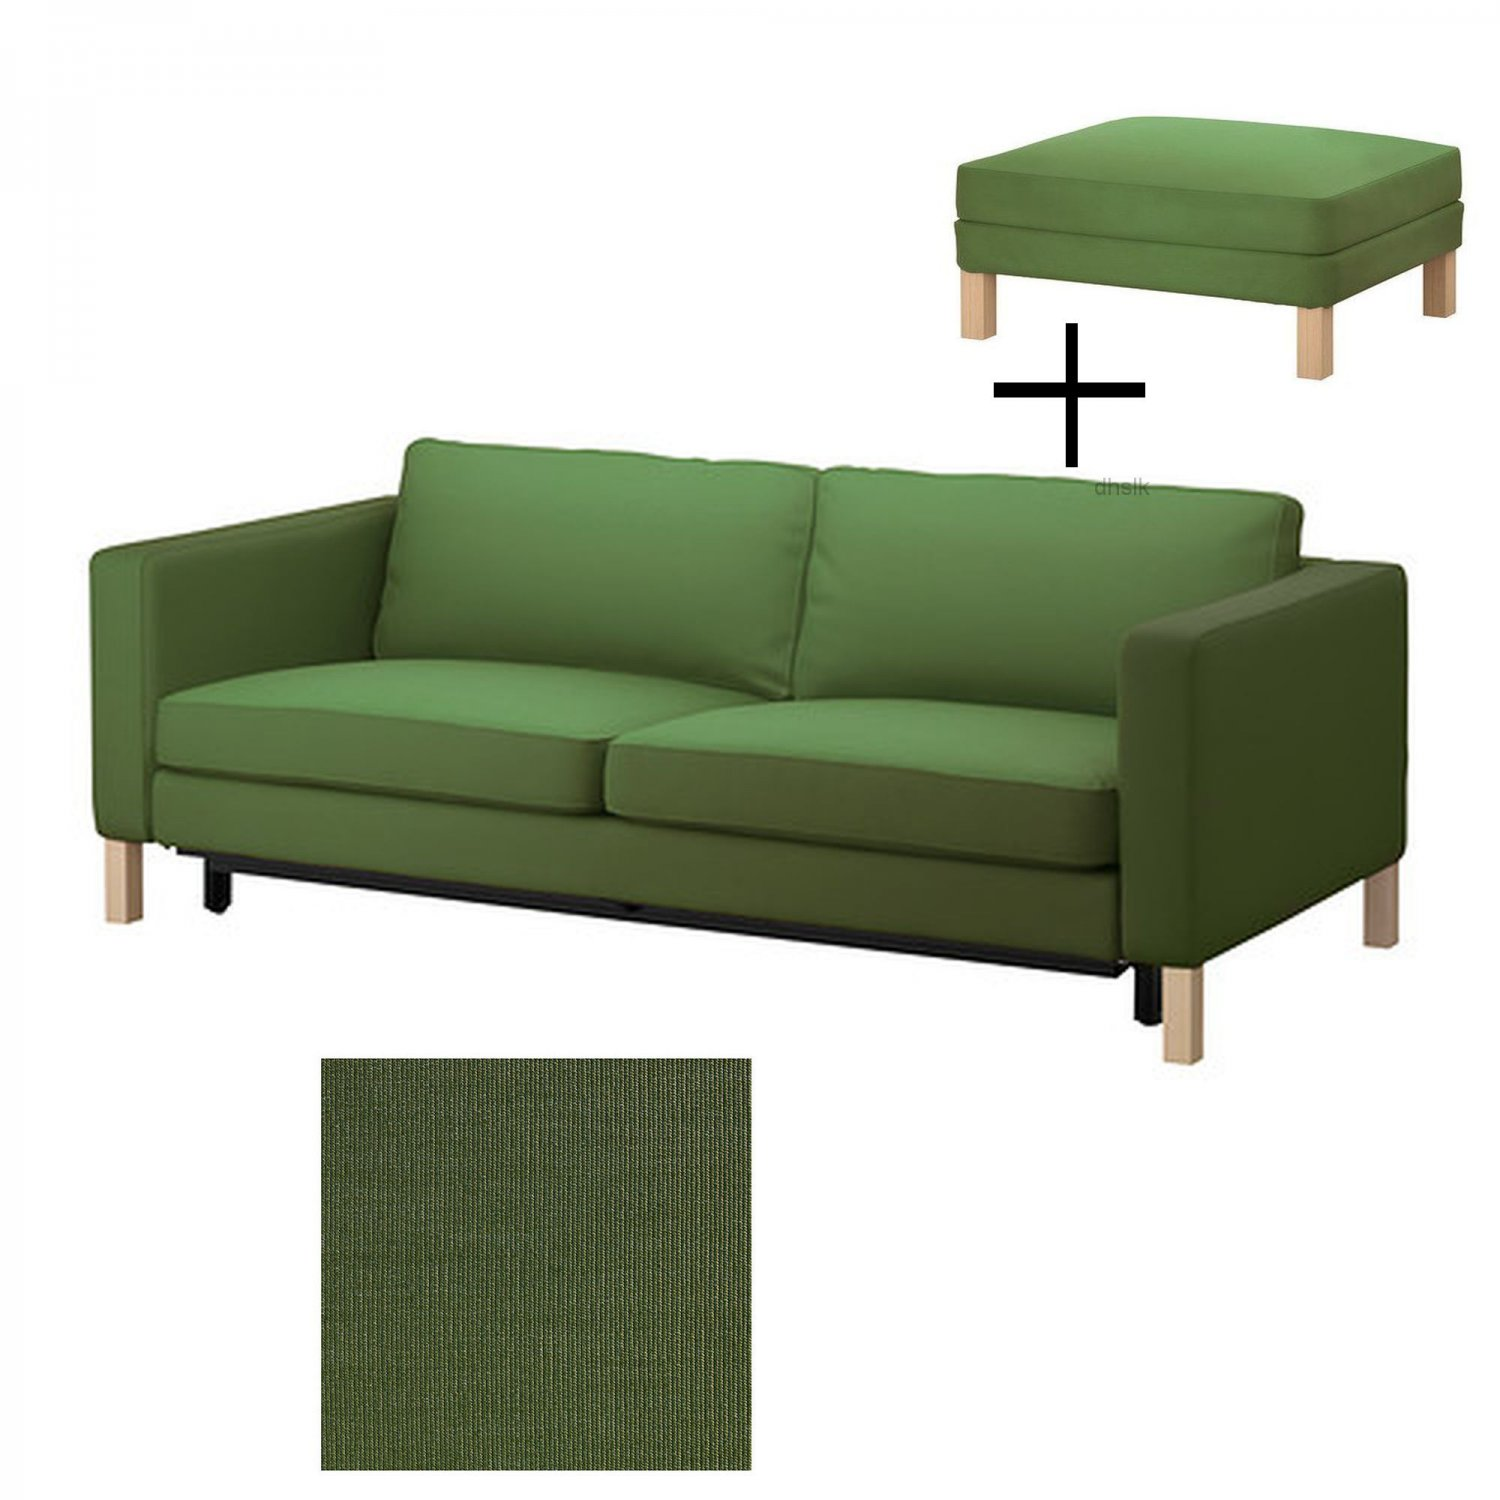 IKEA Karlstad Sofa Bed and Footstool SLIPCOVERS Sofabed Ottoman Covers SIVIK DARK GREEN